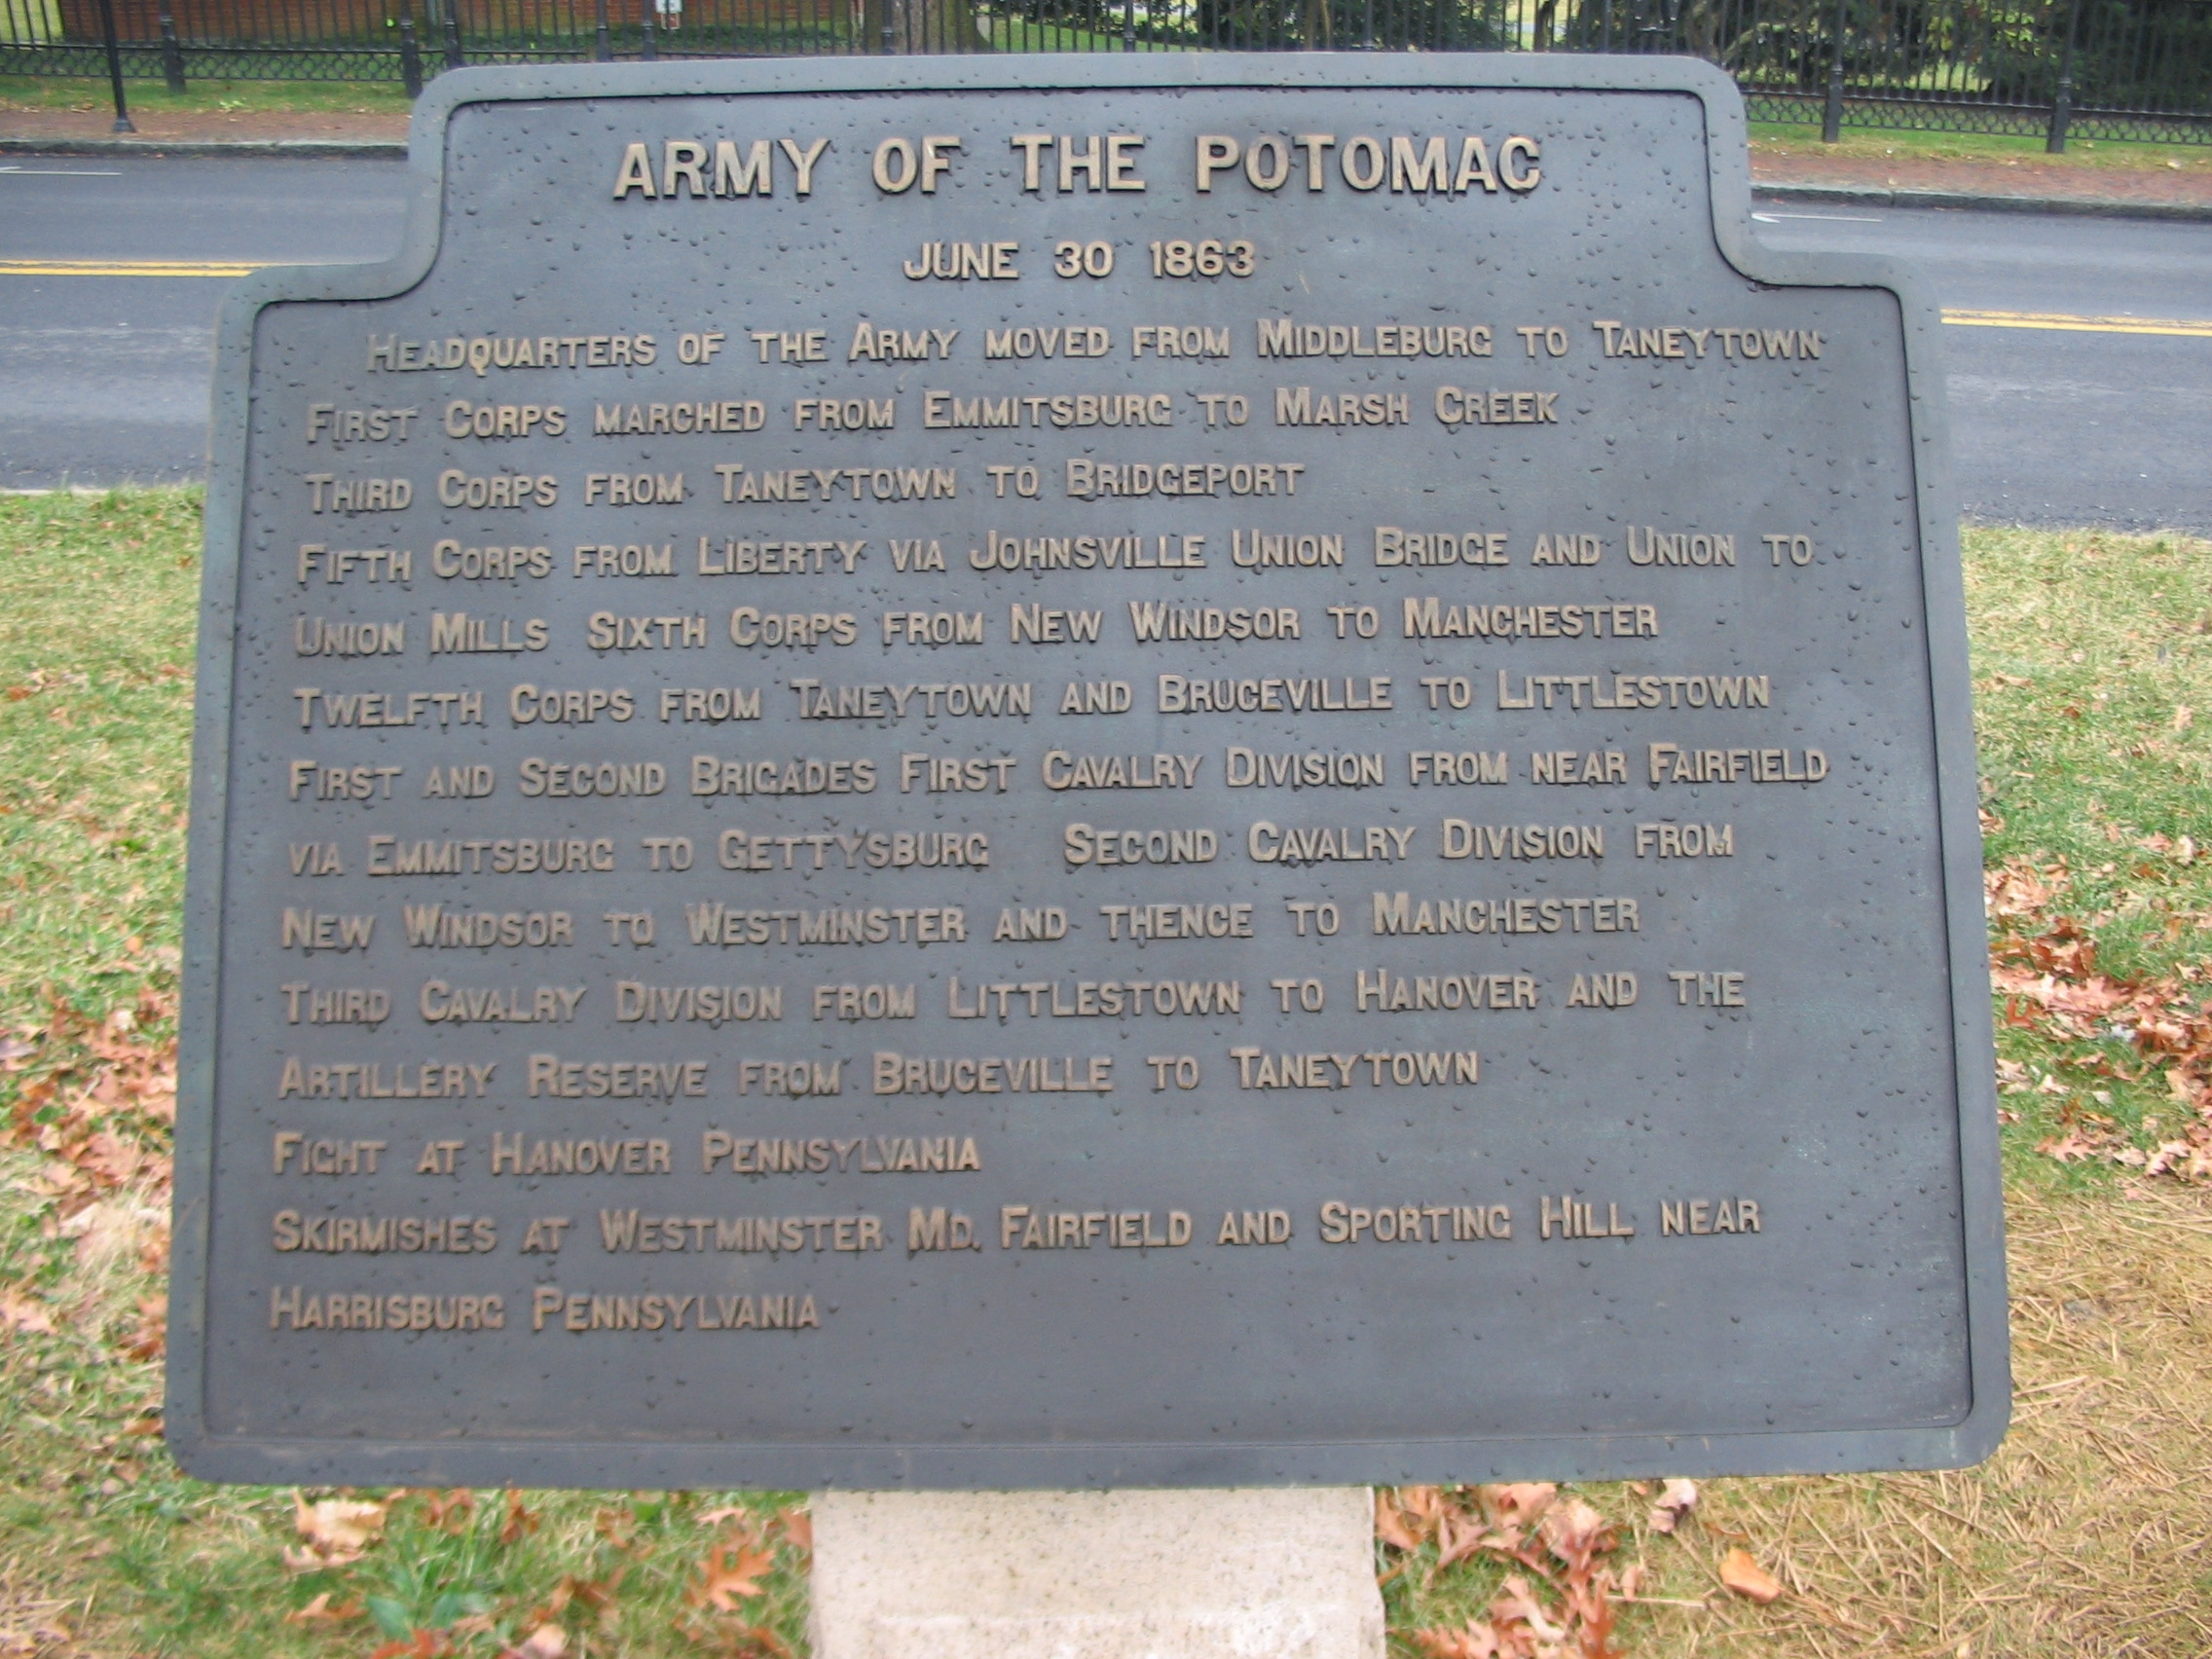 Army of the Potomac - June 30, 1863 Itinerary Tablet